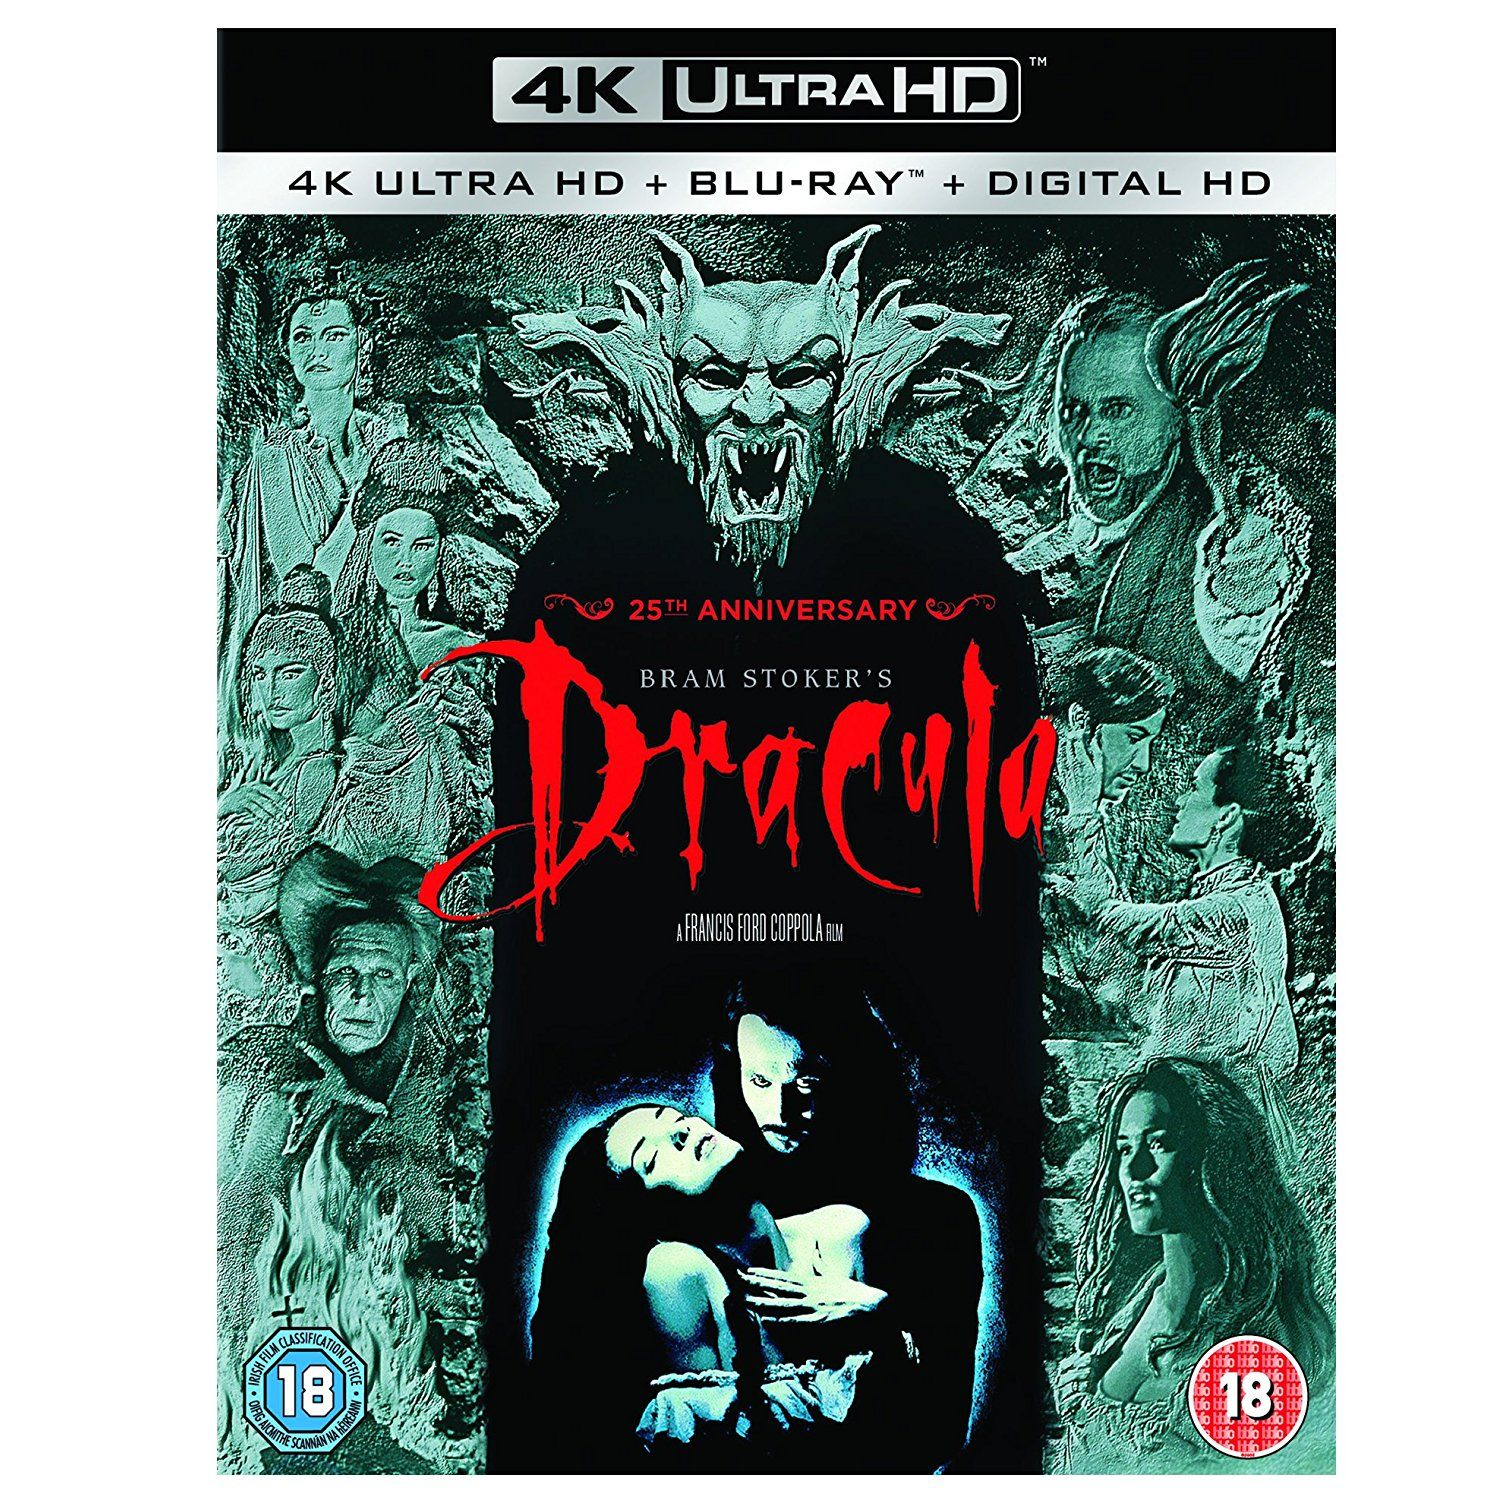 BRAM STOCKER'S DRACULA - Ο ΔΡΑΚΟΥΛΑΣ [4K ReMASTERED] (4K UHD BLU-RAY + BLU-RAY)